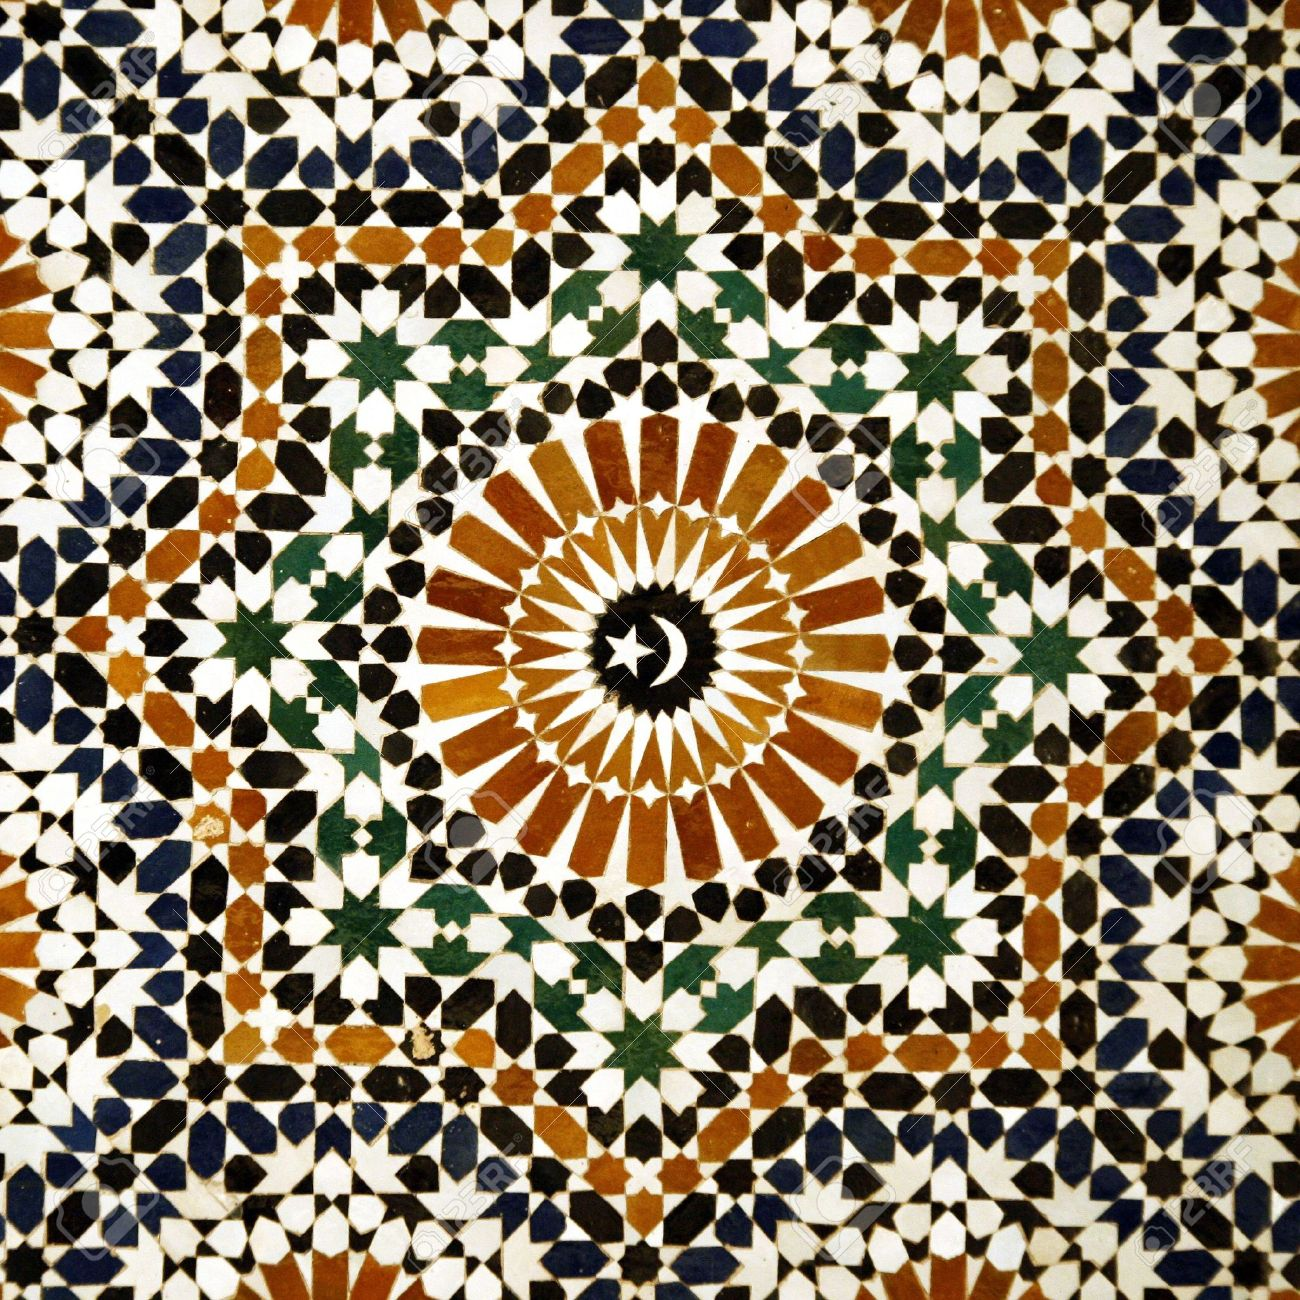 Cool 16X32 Ceiling Tiles Small 18 Inch Floor Tile Regular 18 X 18 Ceramic Tile 20 X 20 Floor Tile Patterns Old 24 X 24 Ceiling Tiles Dark3 X 12 Subway Tile Arabic Ceramic Tiles Stock Photo, Picture And Royalty Free Image ..